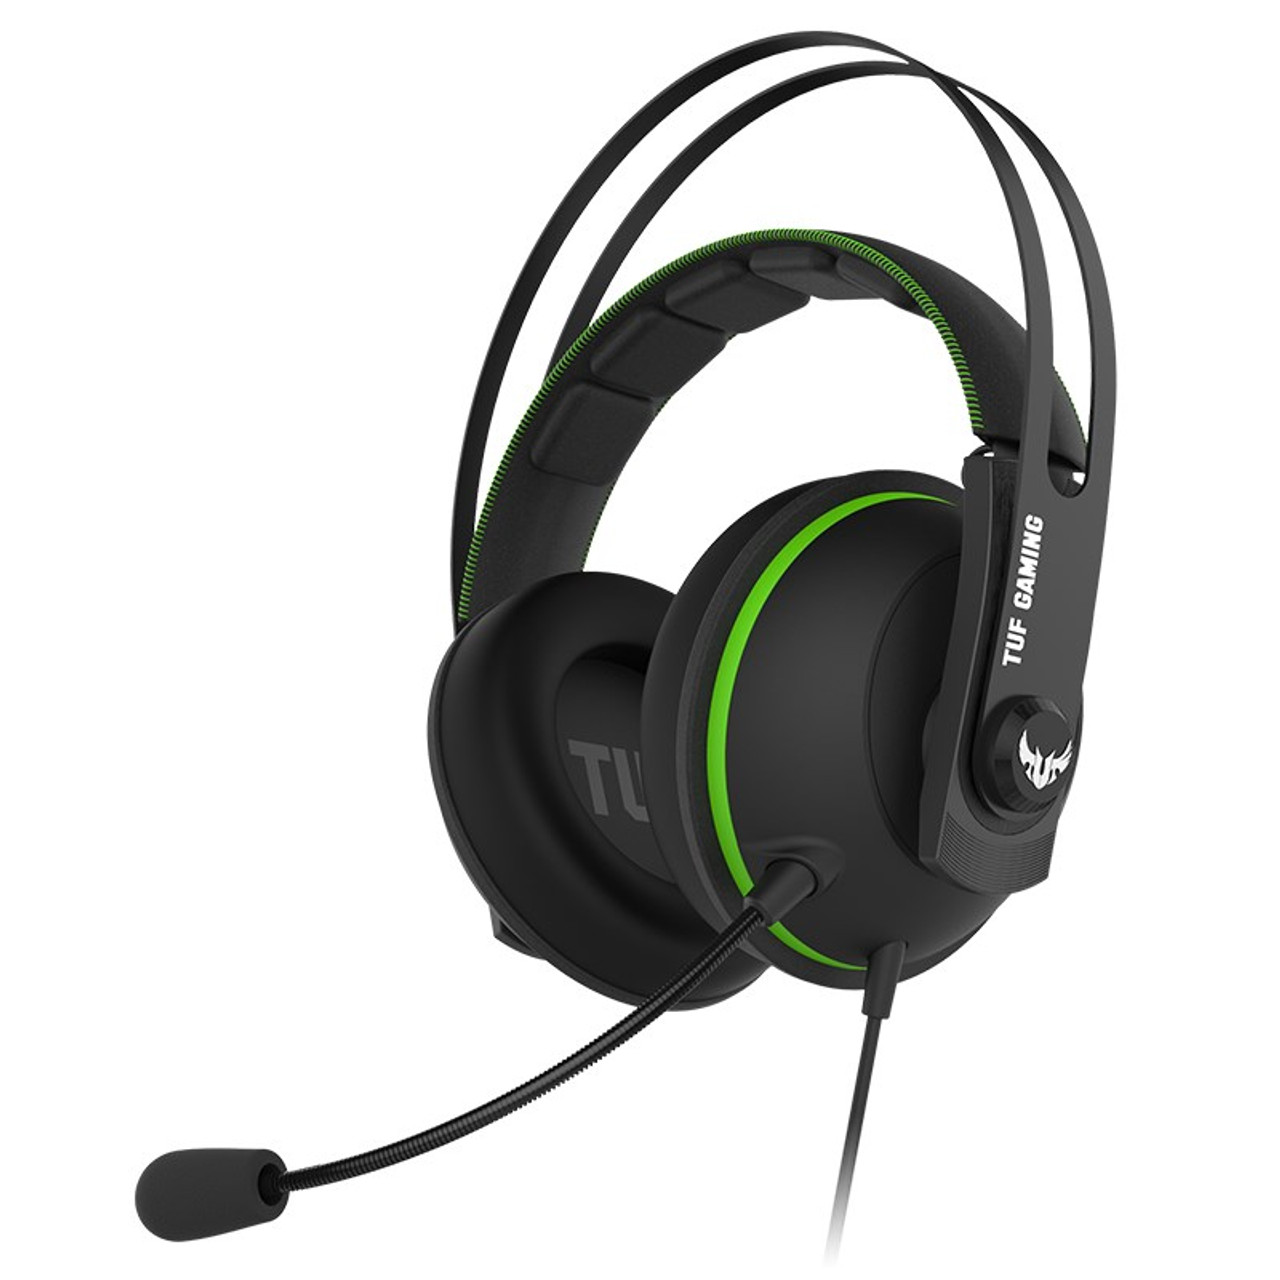 Image for Asus TUF Gaming H7 Core Gaming Headset - Green CX Computer Superstore